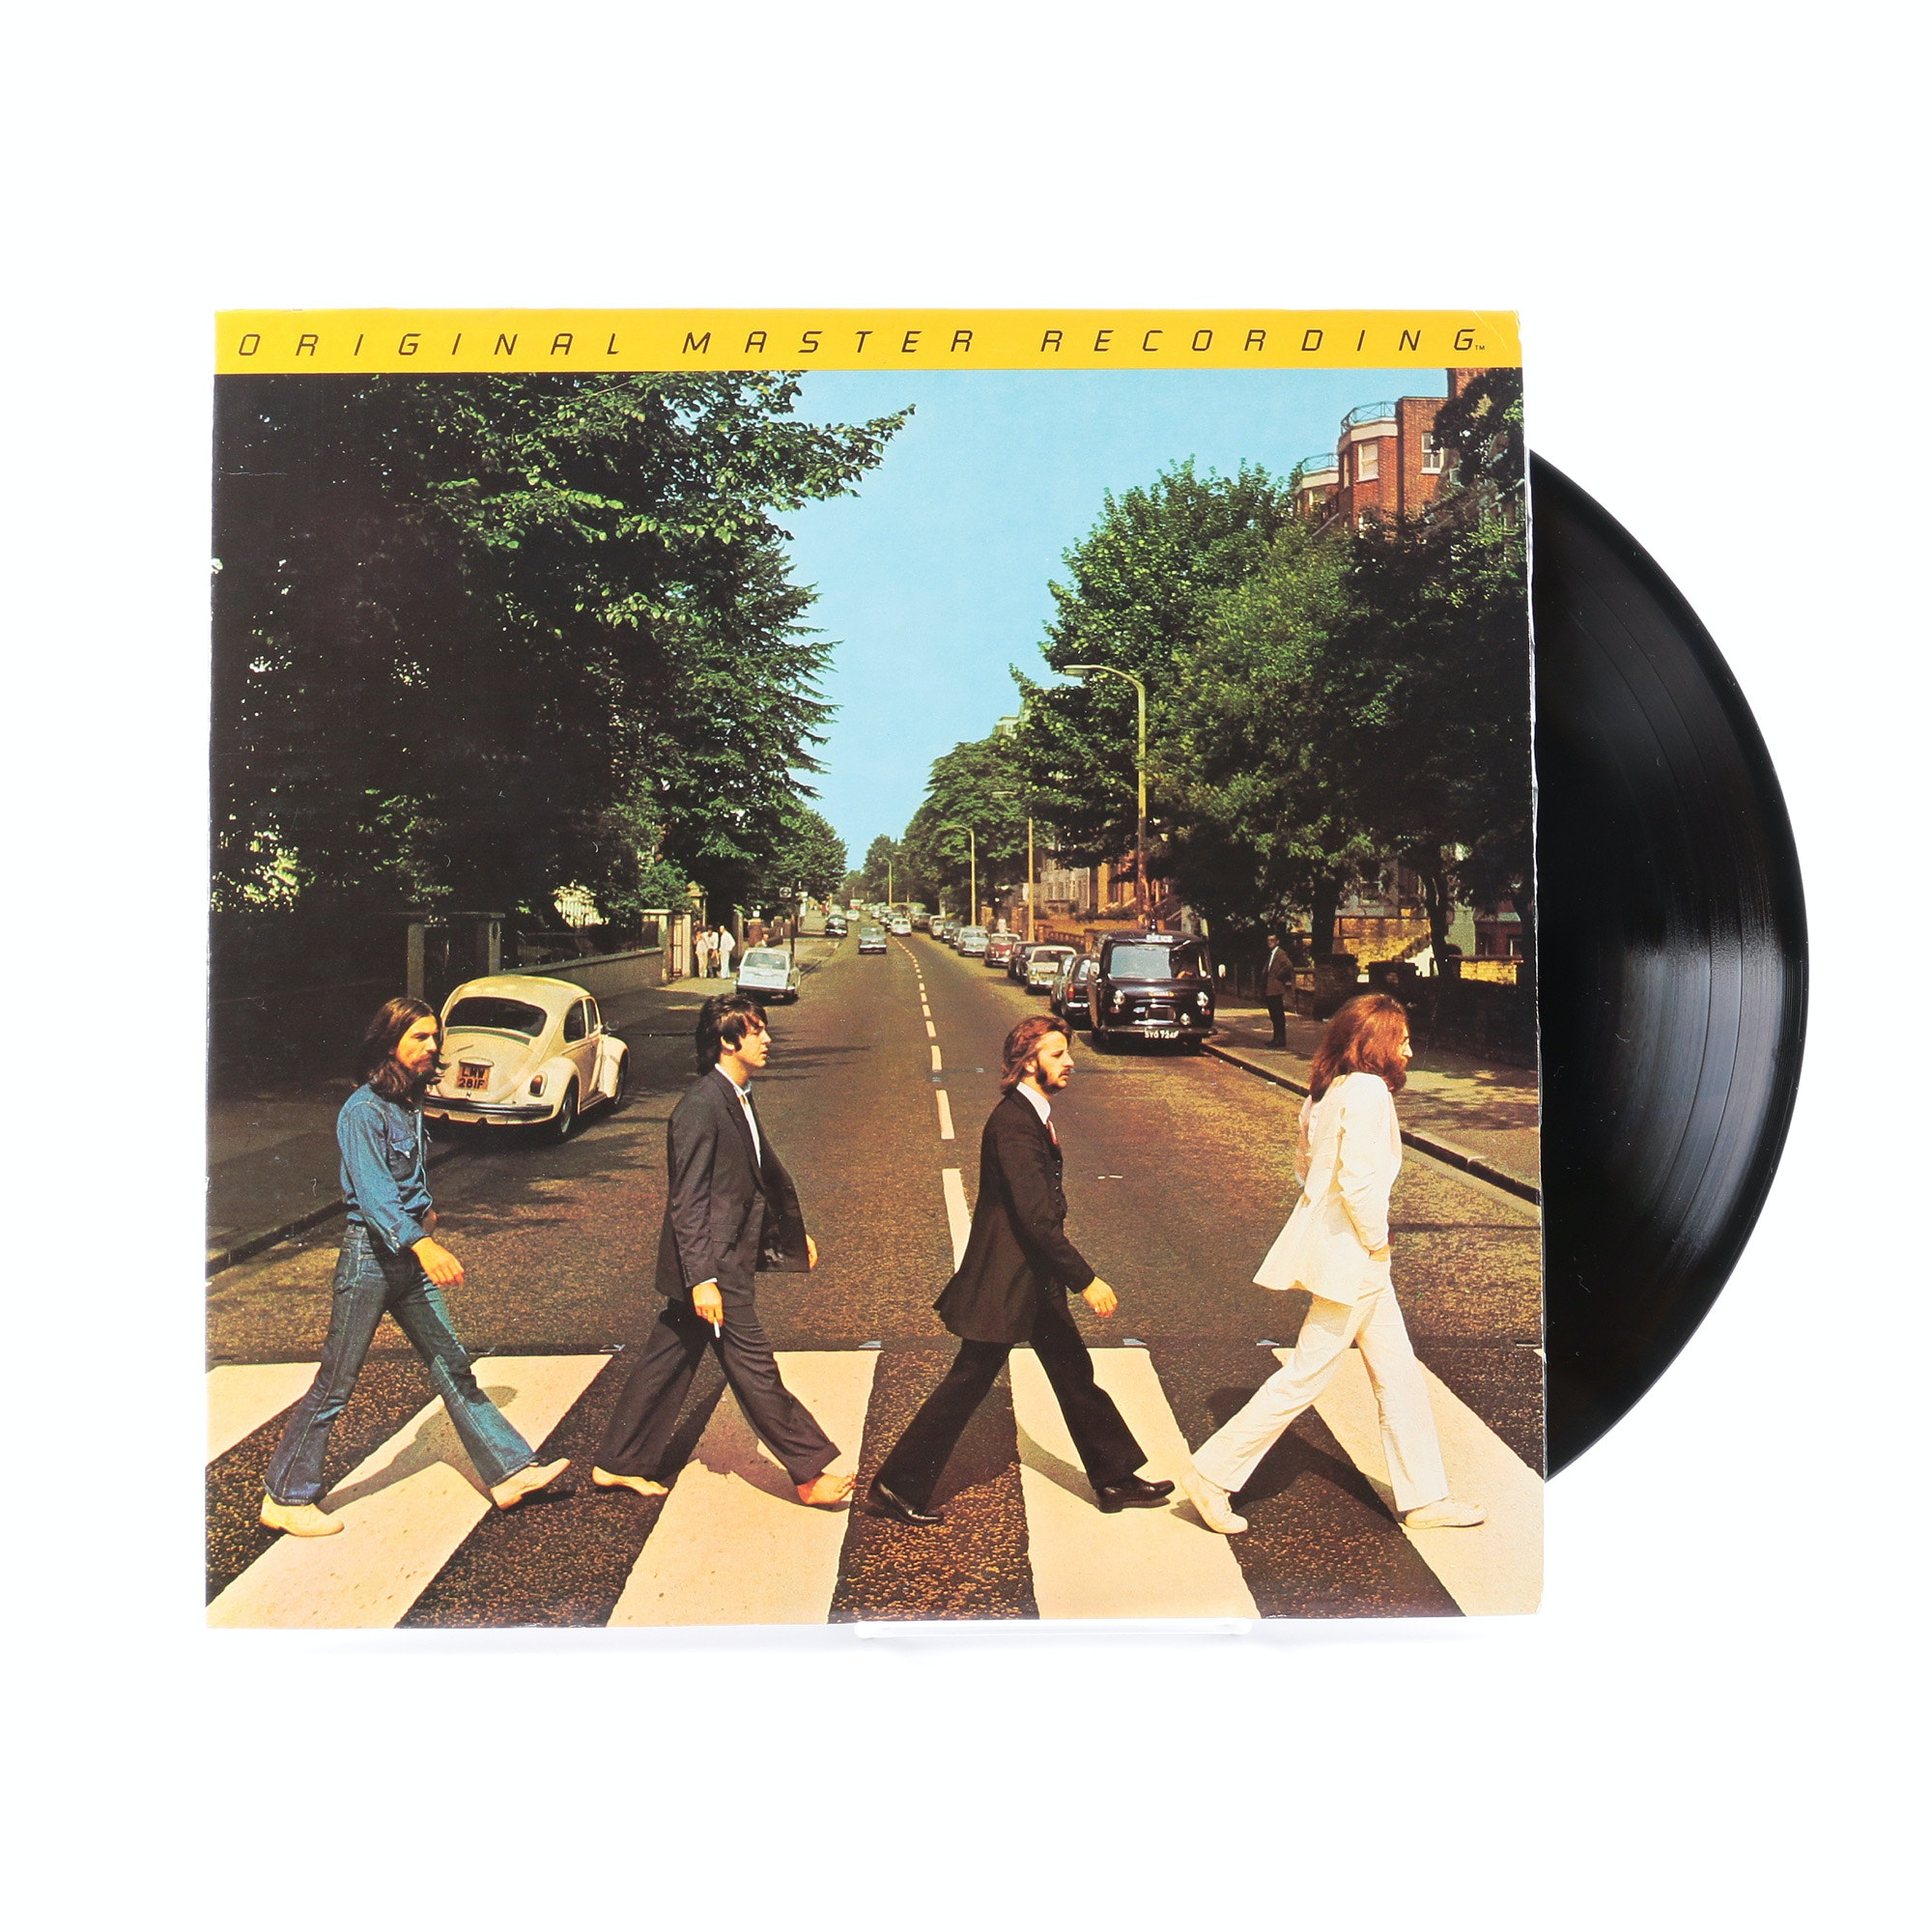 "The Beatles ""Abbey Road"" Original Master Recording LP"